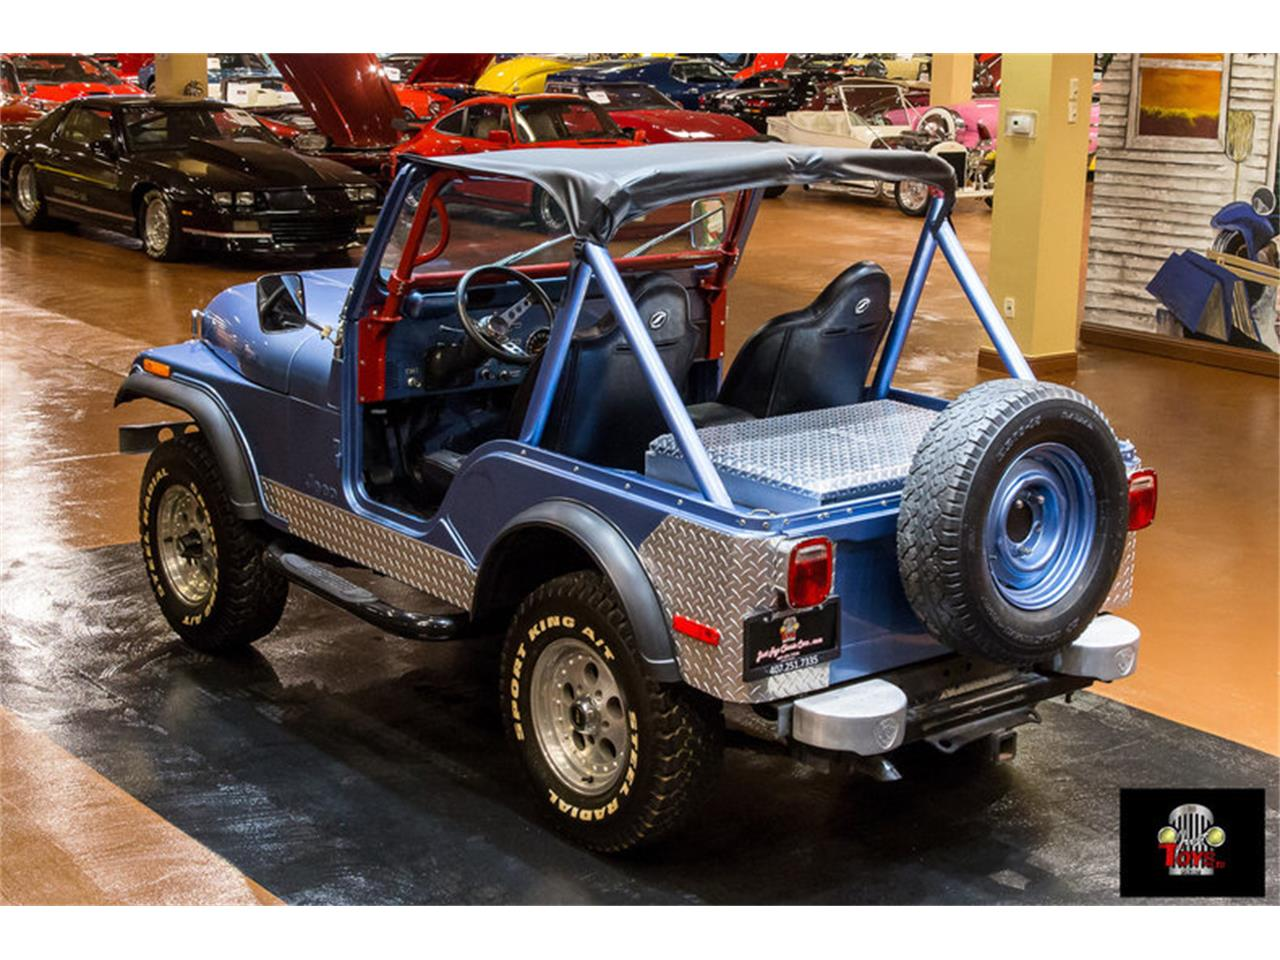 Large Picture of 1980 Wrangler located in Florida - $12,995.00 - LHCB